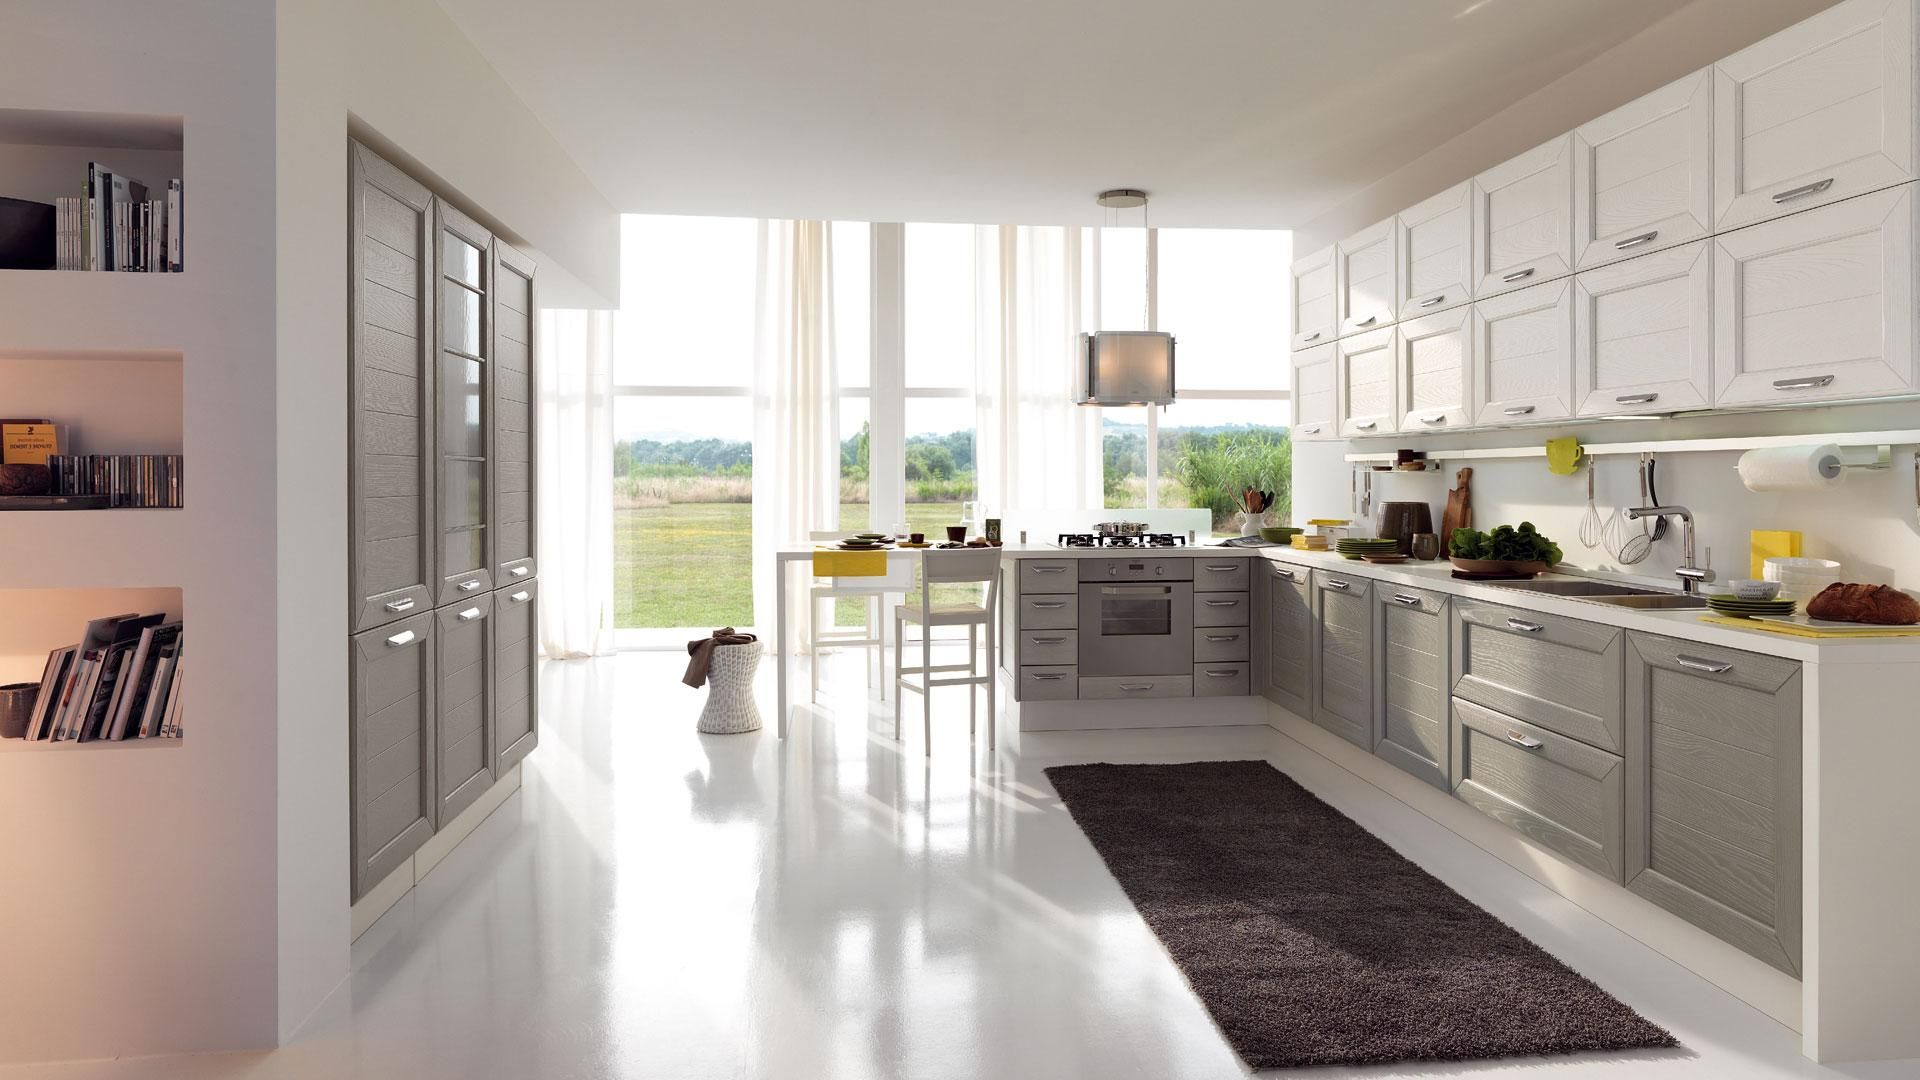 European Kitchen Cabinetry  Turn Your Kitchen Into A Classy Classy European Kitchen Design Decorating Inspiration